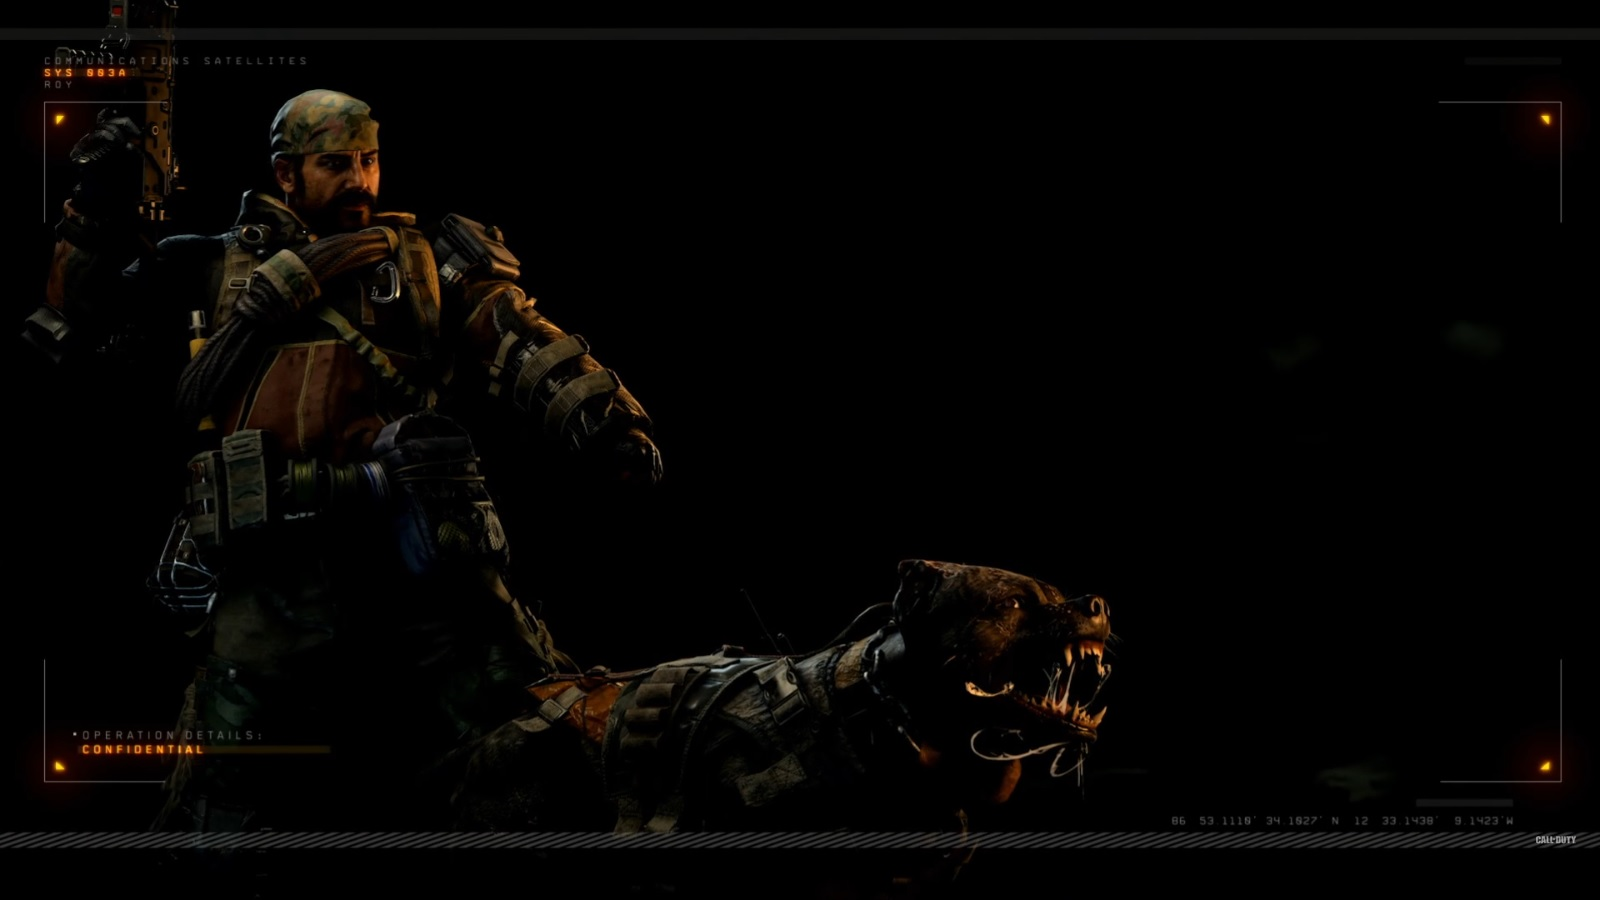 Call Of Duty Black Ops 4 HD Wallpaper